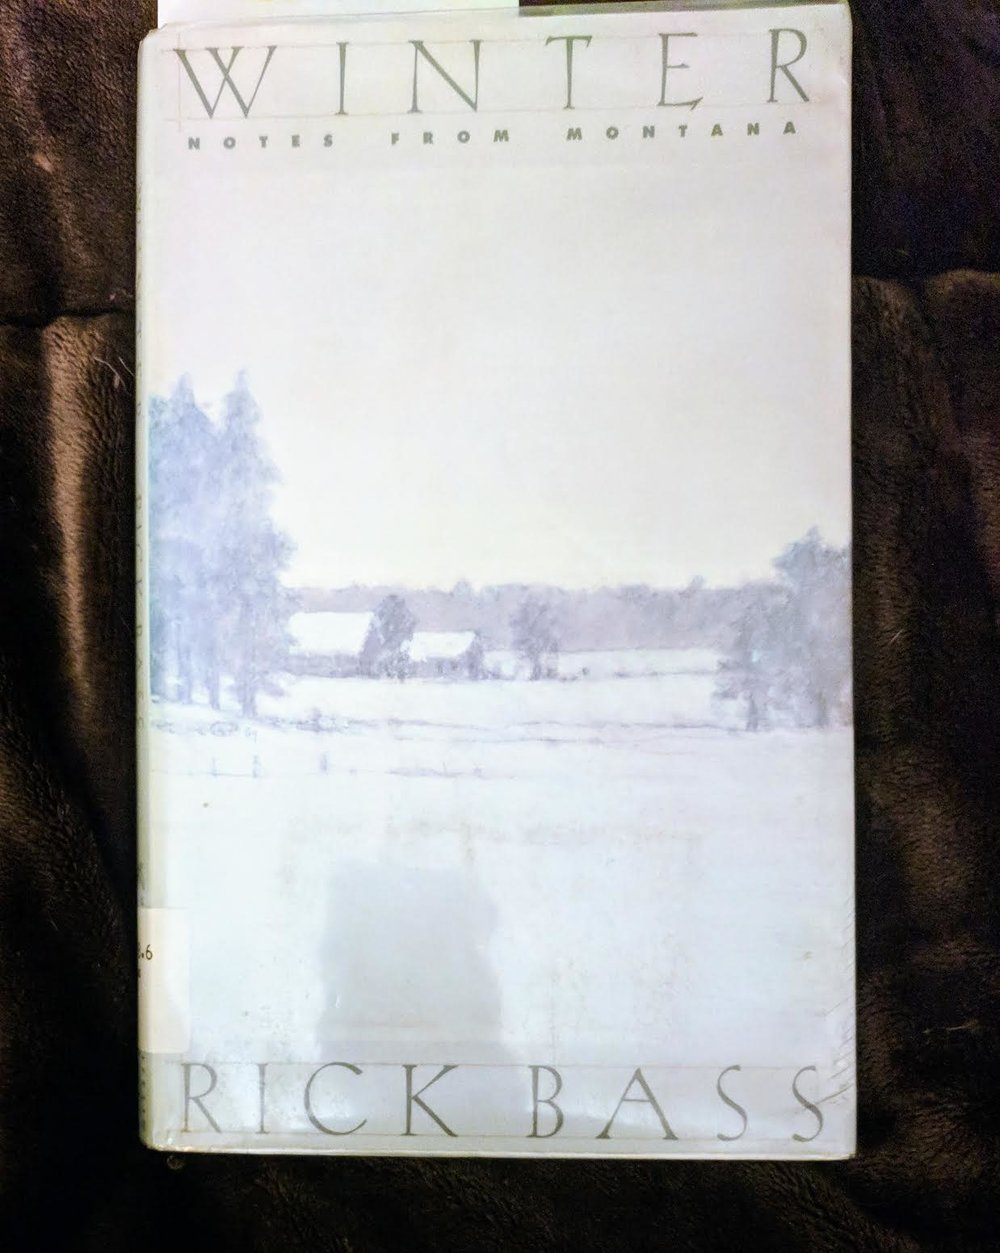 Rick BassWinter - Might be the most beautiful book I've read since Annie Dillard's An American Childhood or maybe since Walden or Essays Of E.B. White or pretty much any other great book I can think of in which a person tells their story.